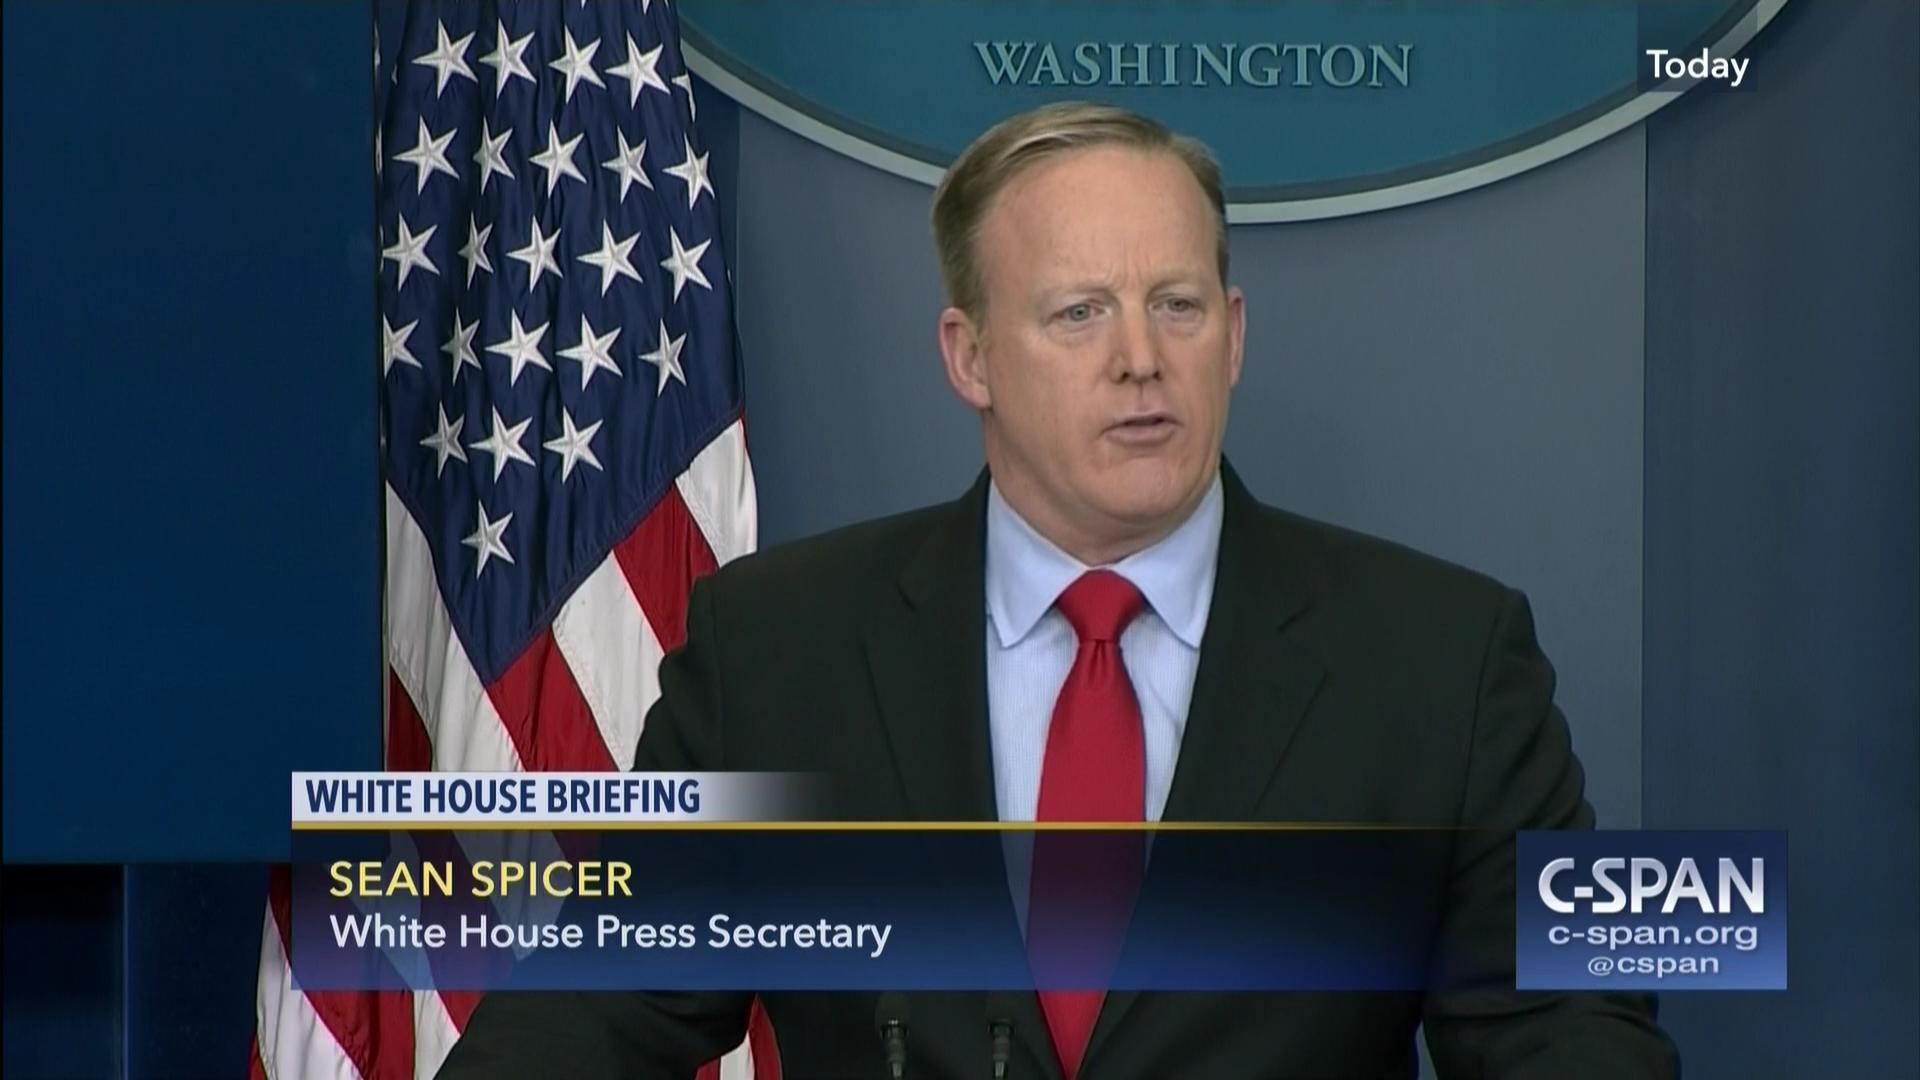 sean spicer fields questions iran sanctions, feb 3 2017 | c-span